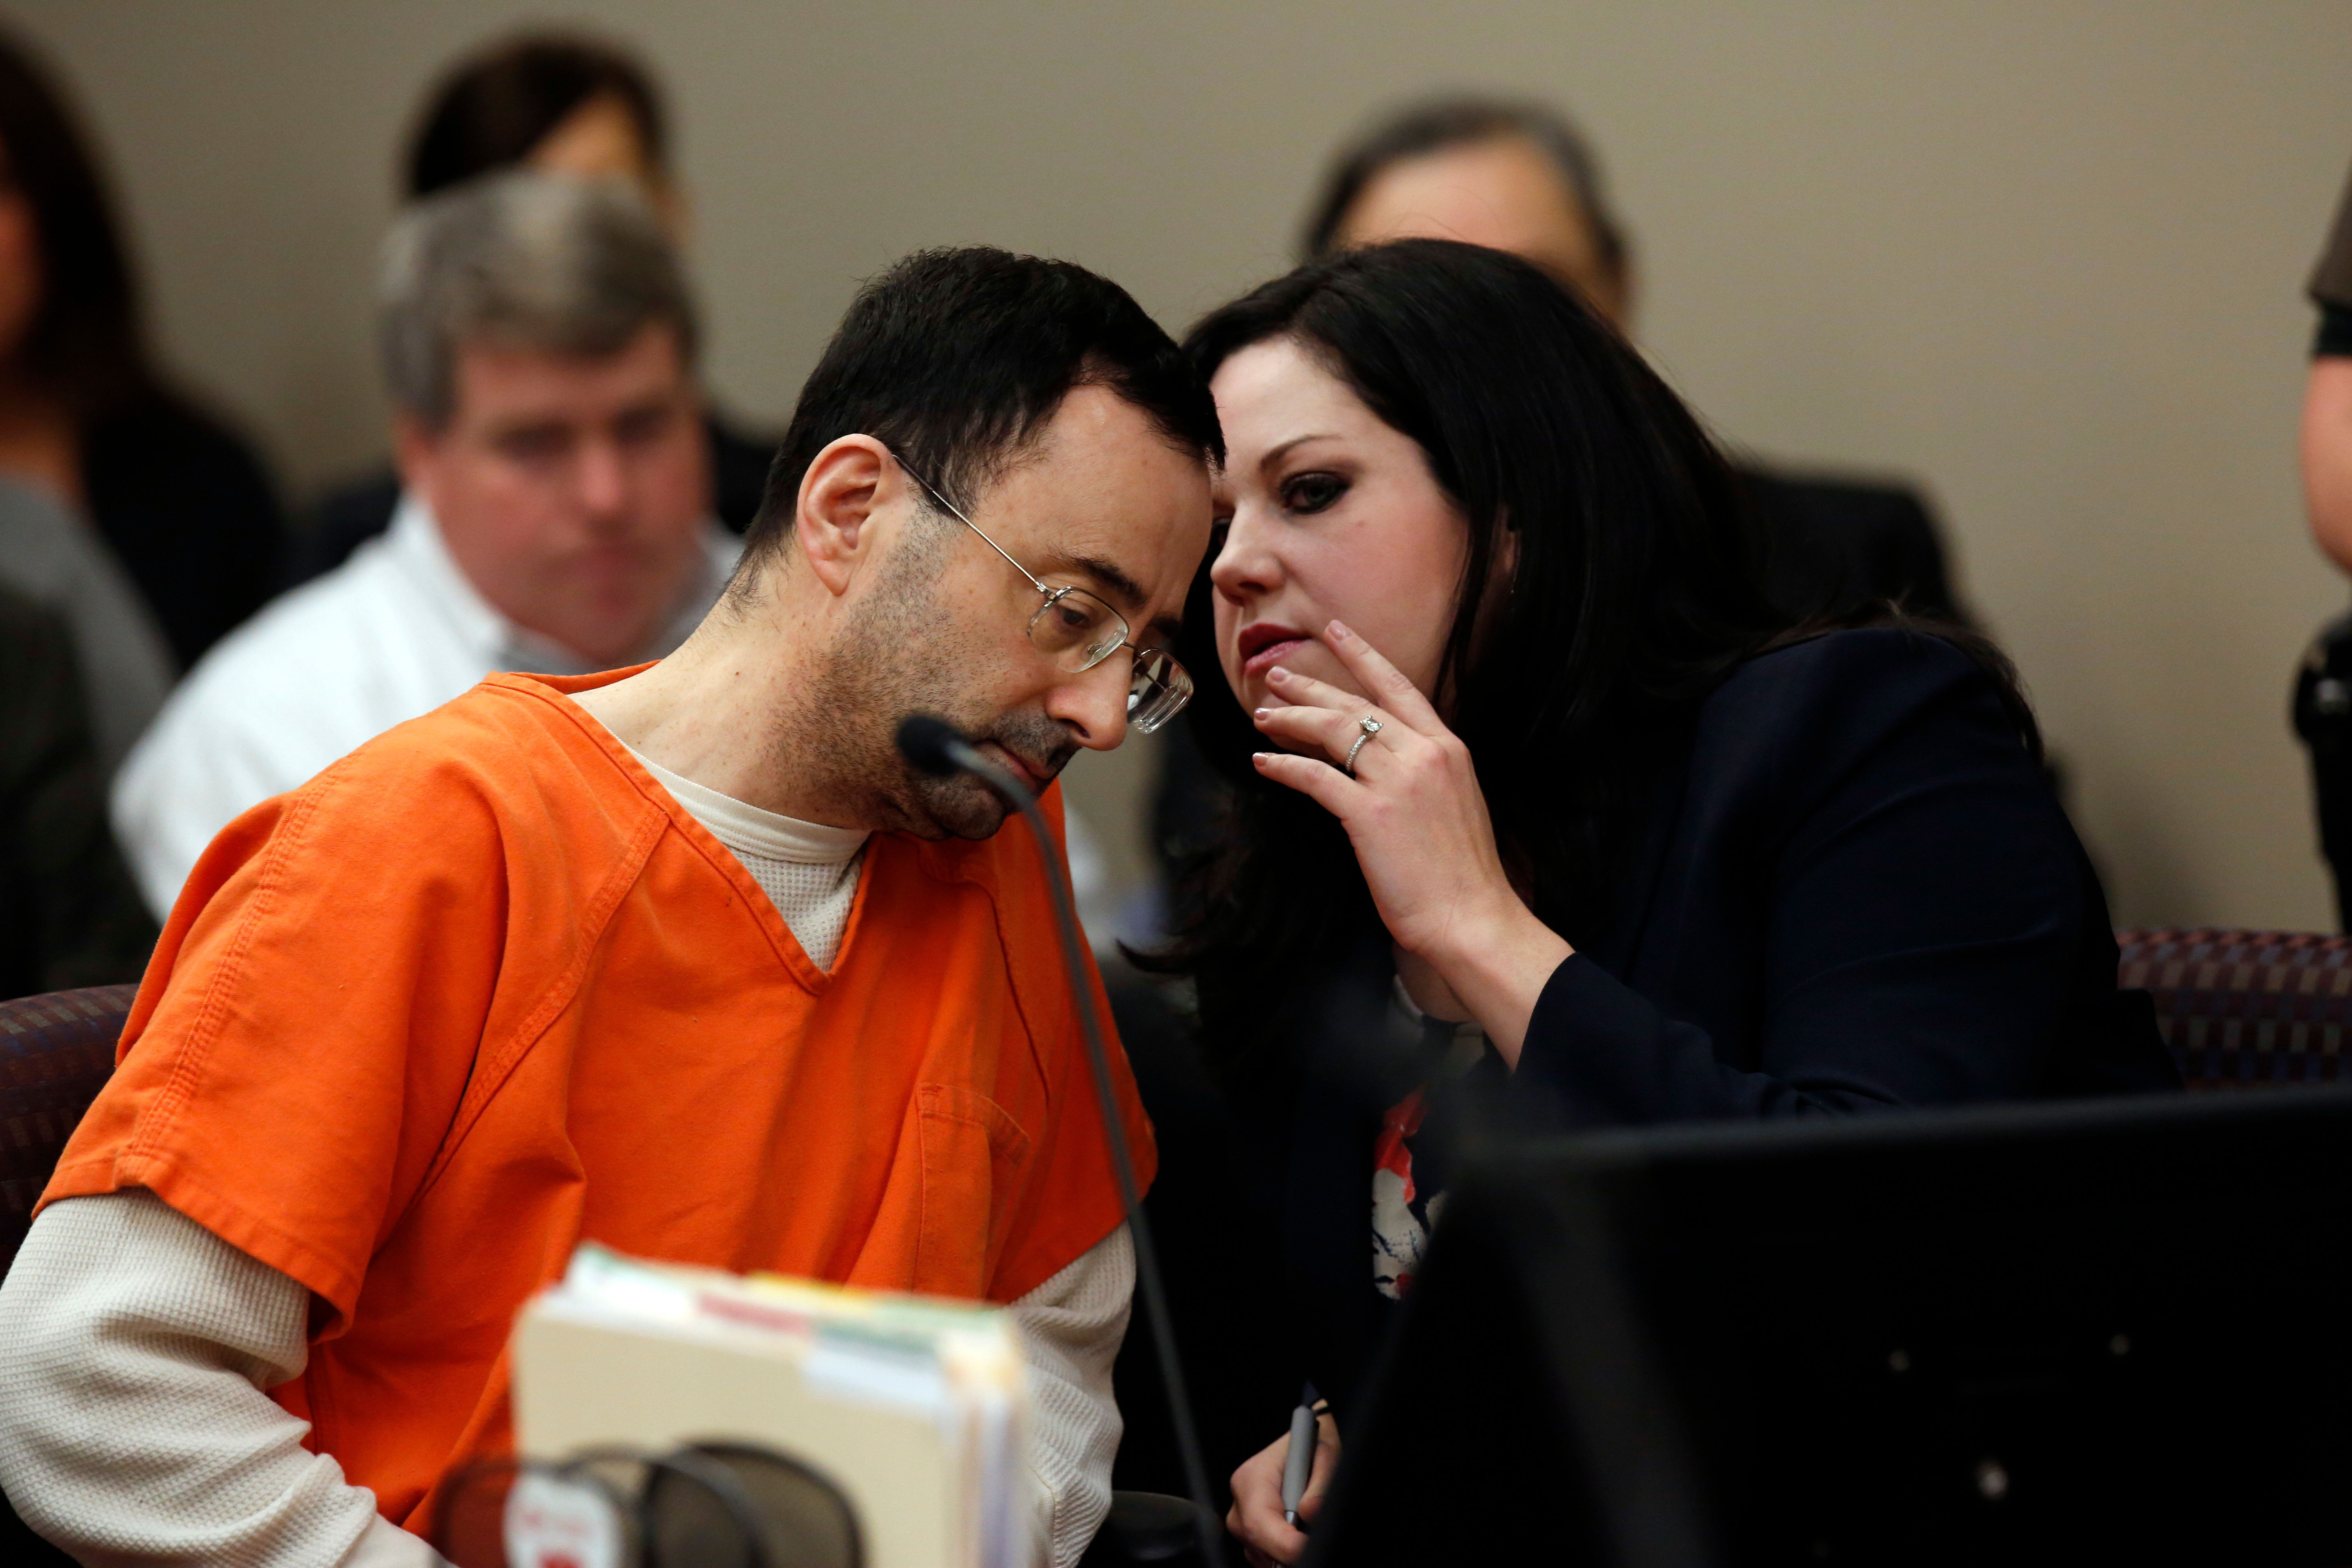 Larry Nassar in court with his defense attorney Shannon Smith on Nov. 22, 2017.